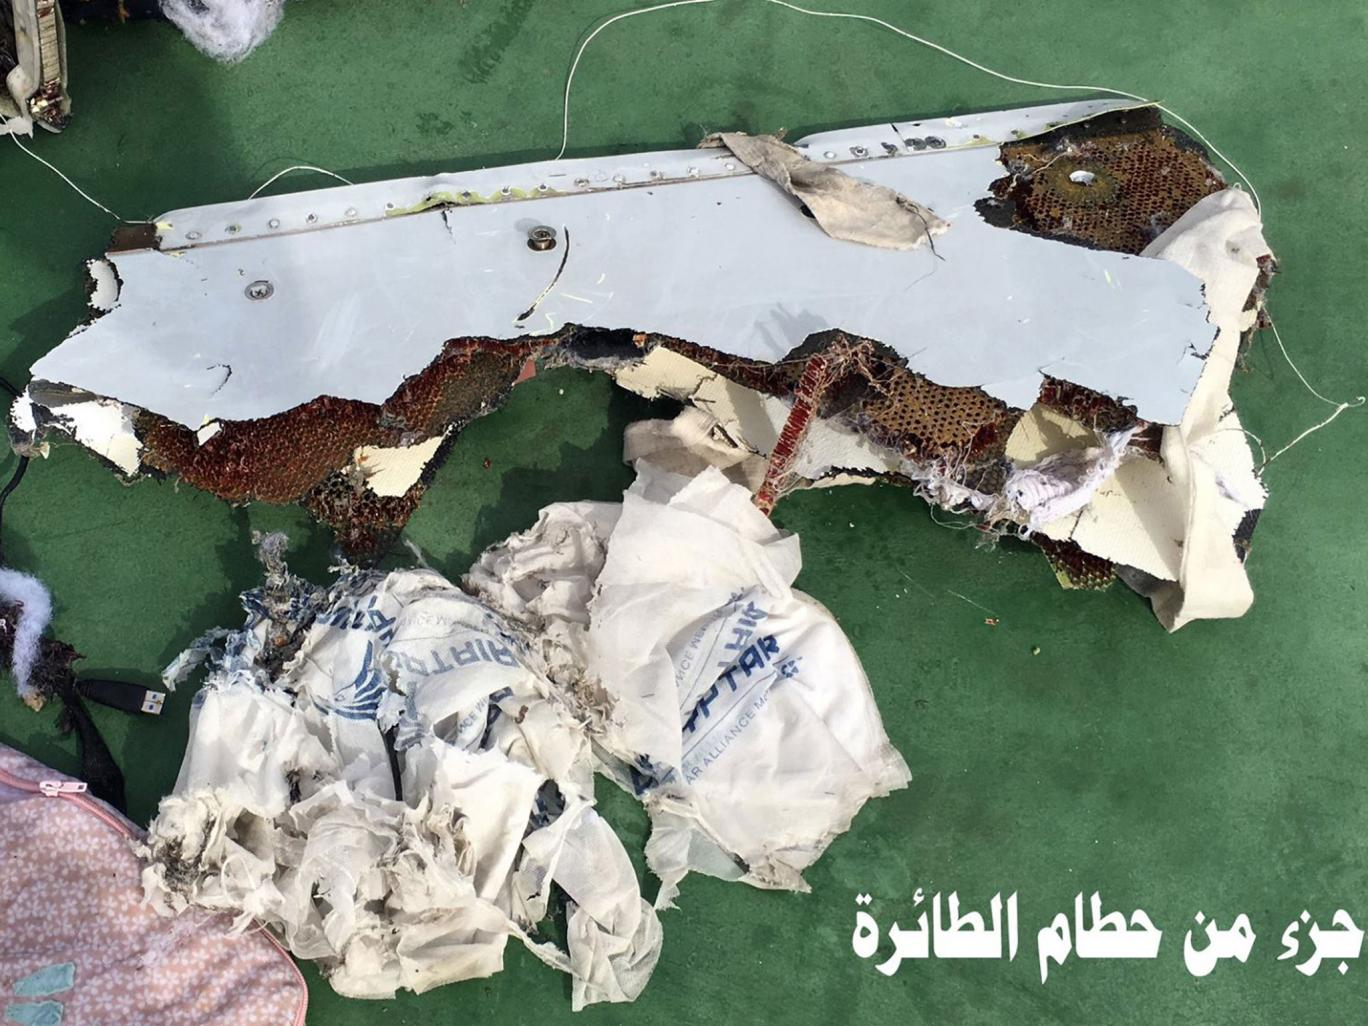 The Egyptian army published photos showing wreckage and debris from EgyptAir flight 804 on 21 May Egyptian army